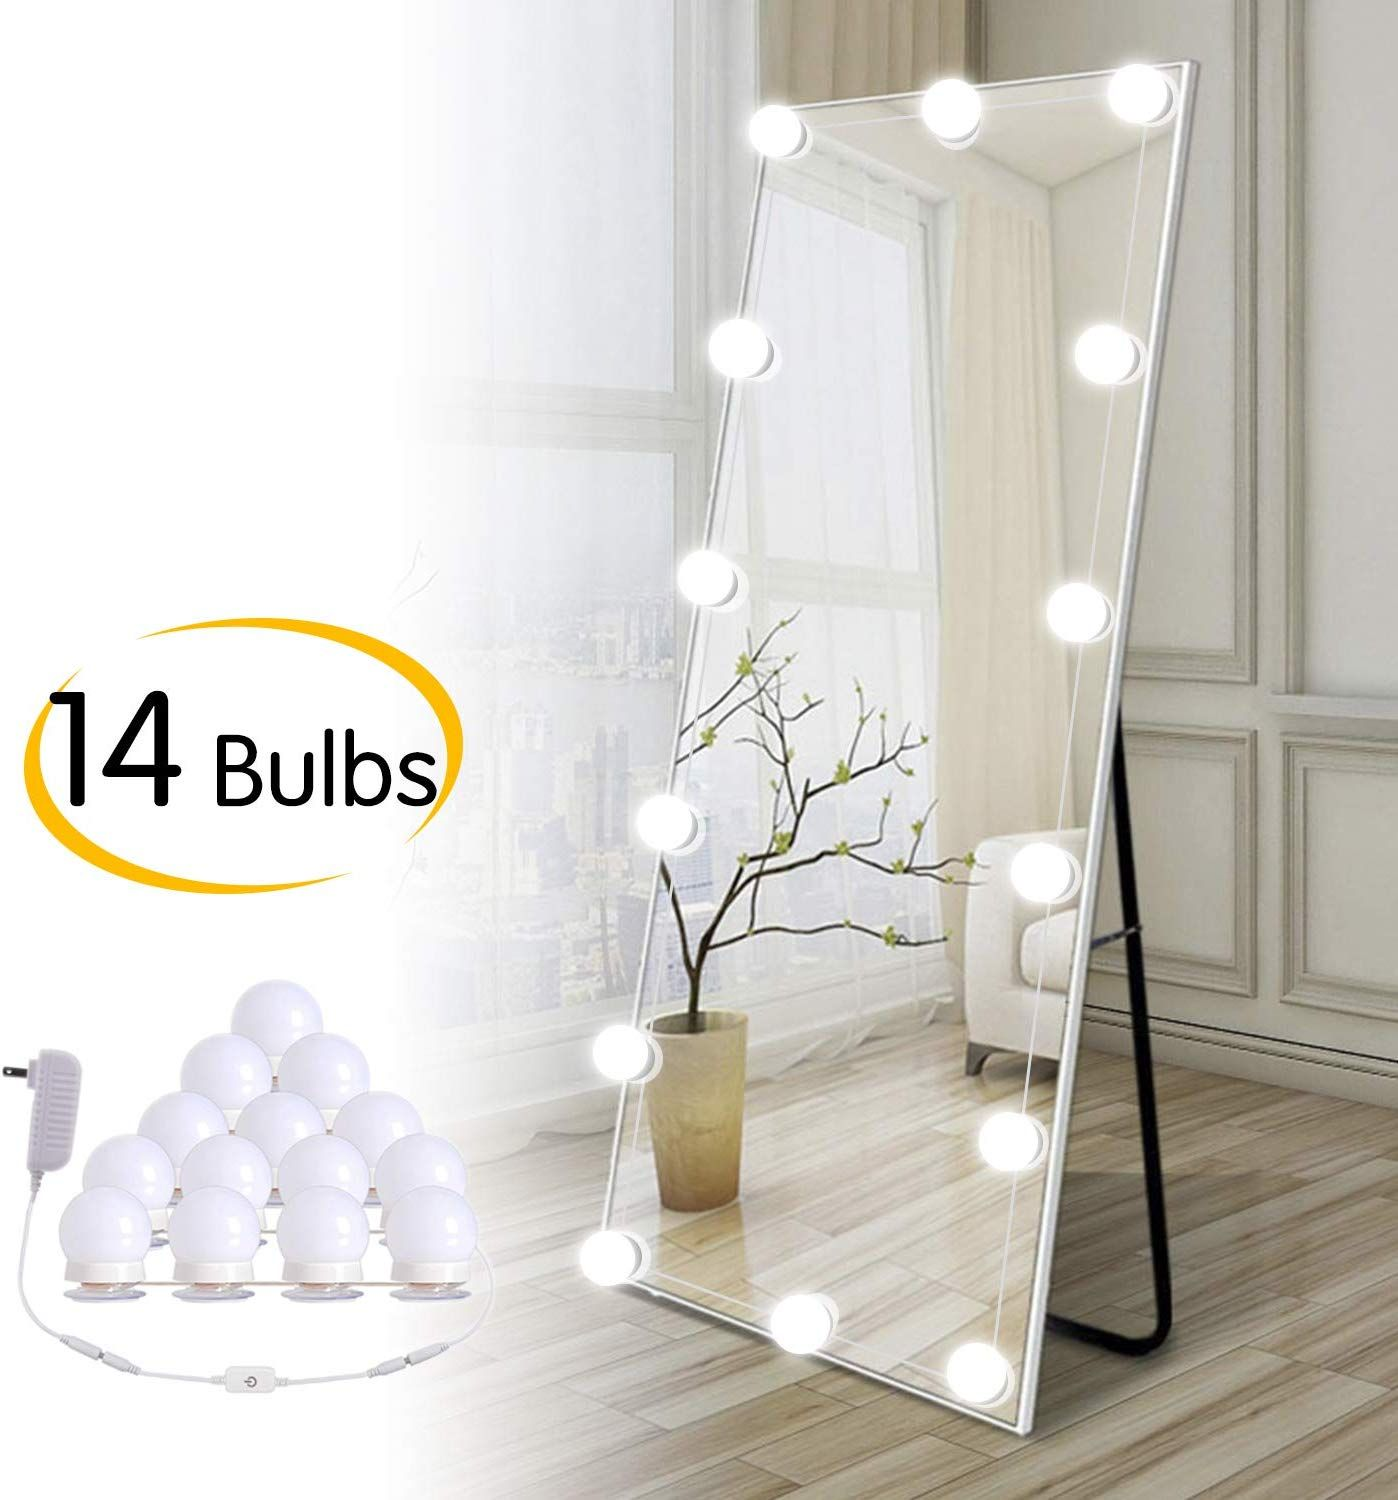 Hollywood Diy Led Vanity Lights Strip Kit With 14 Dimmable Light Bulbs For Dressing Mirror Makeup Table Mirror Plug In Vanity Mirror Lights With Power Supply In 2020 Led Vanity